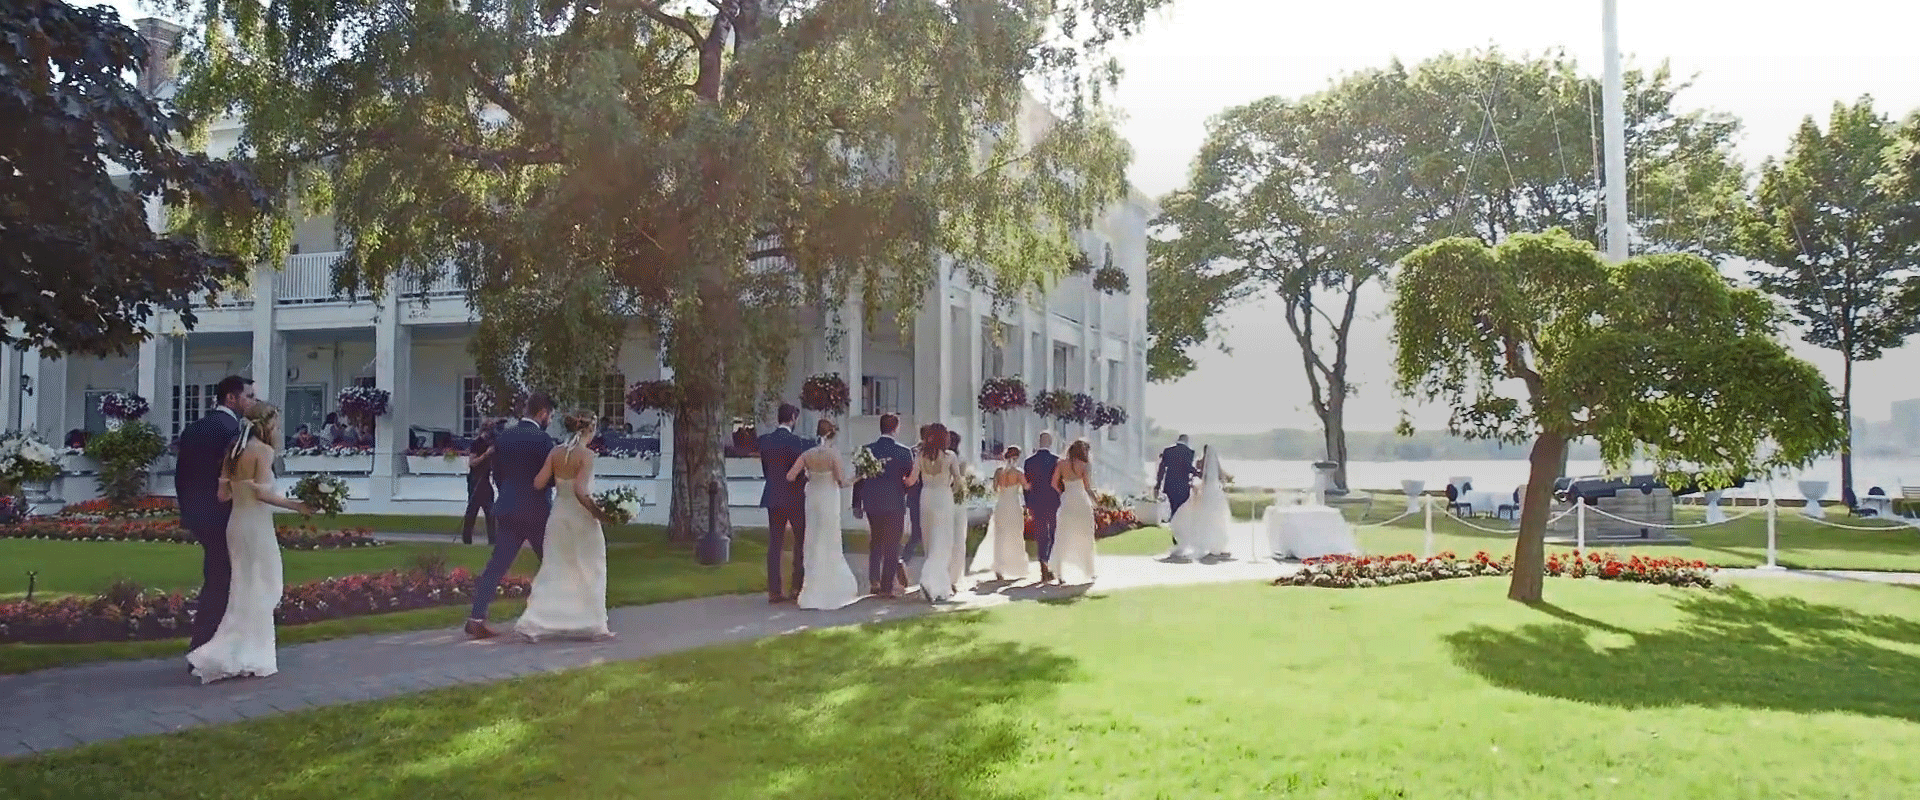 An image of the bridal party leaving the ceremony at the Royal Canadian Yacht Club; Taken from one of our Toronto Wedding Videography videos